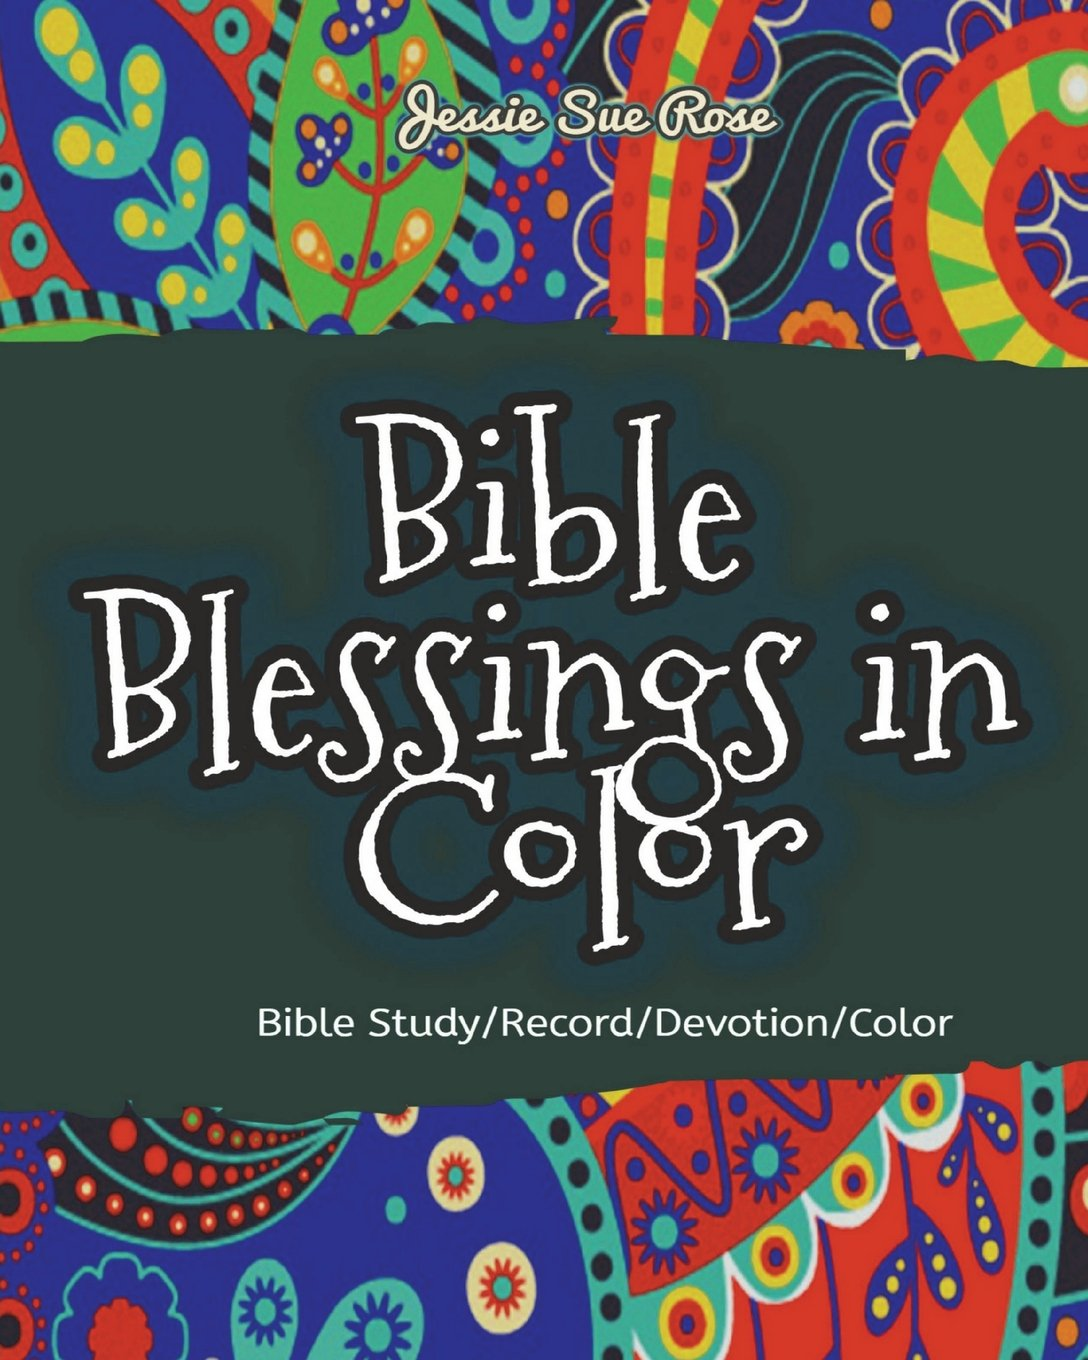 Bible Blessings in Color: 52 Awesome Bible Verses Coloring